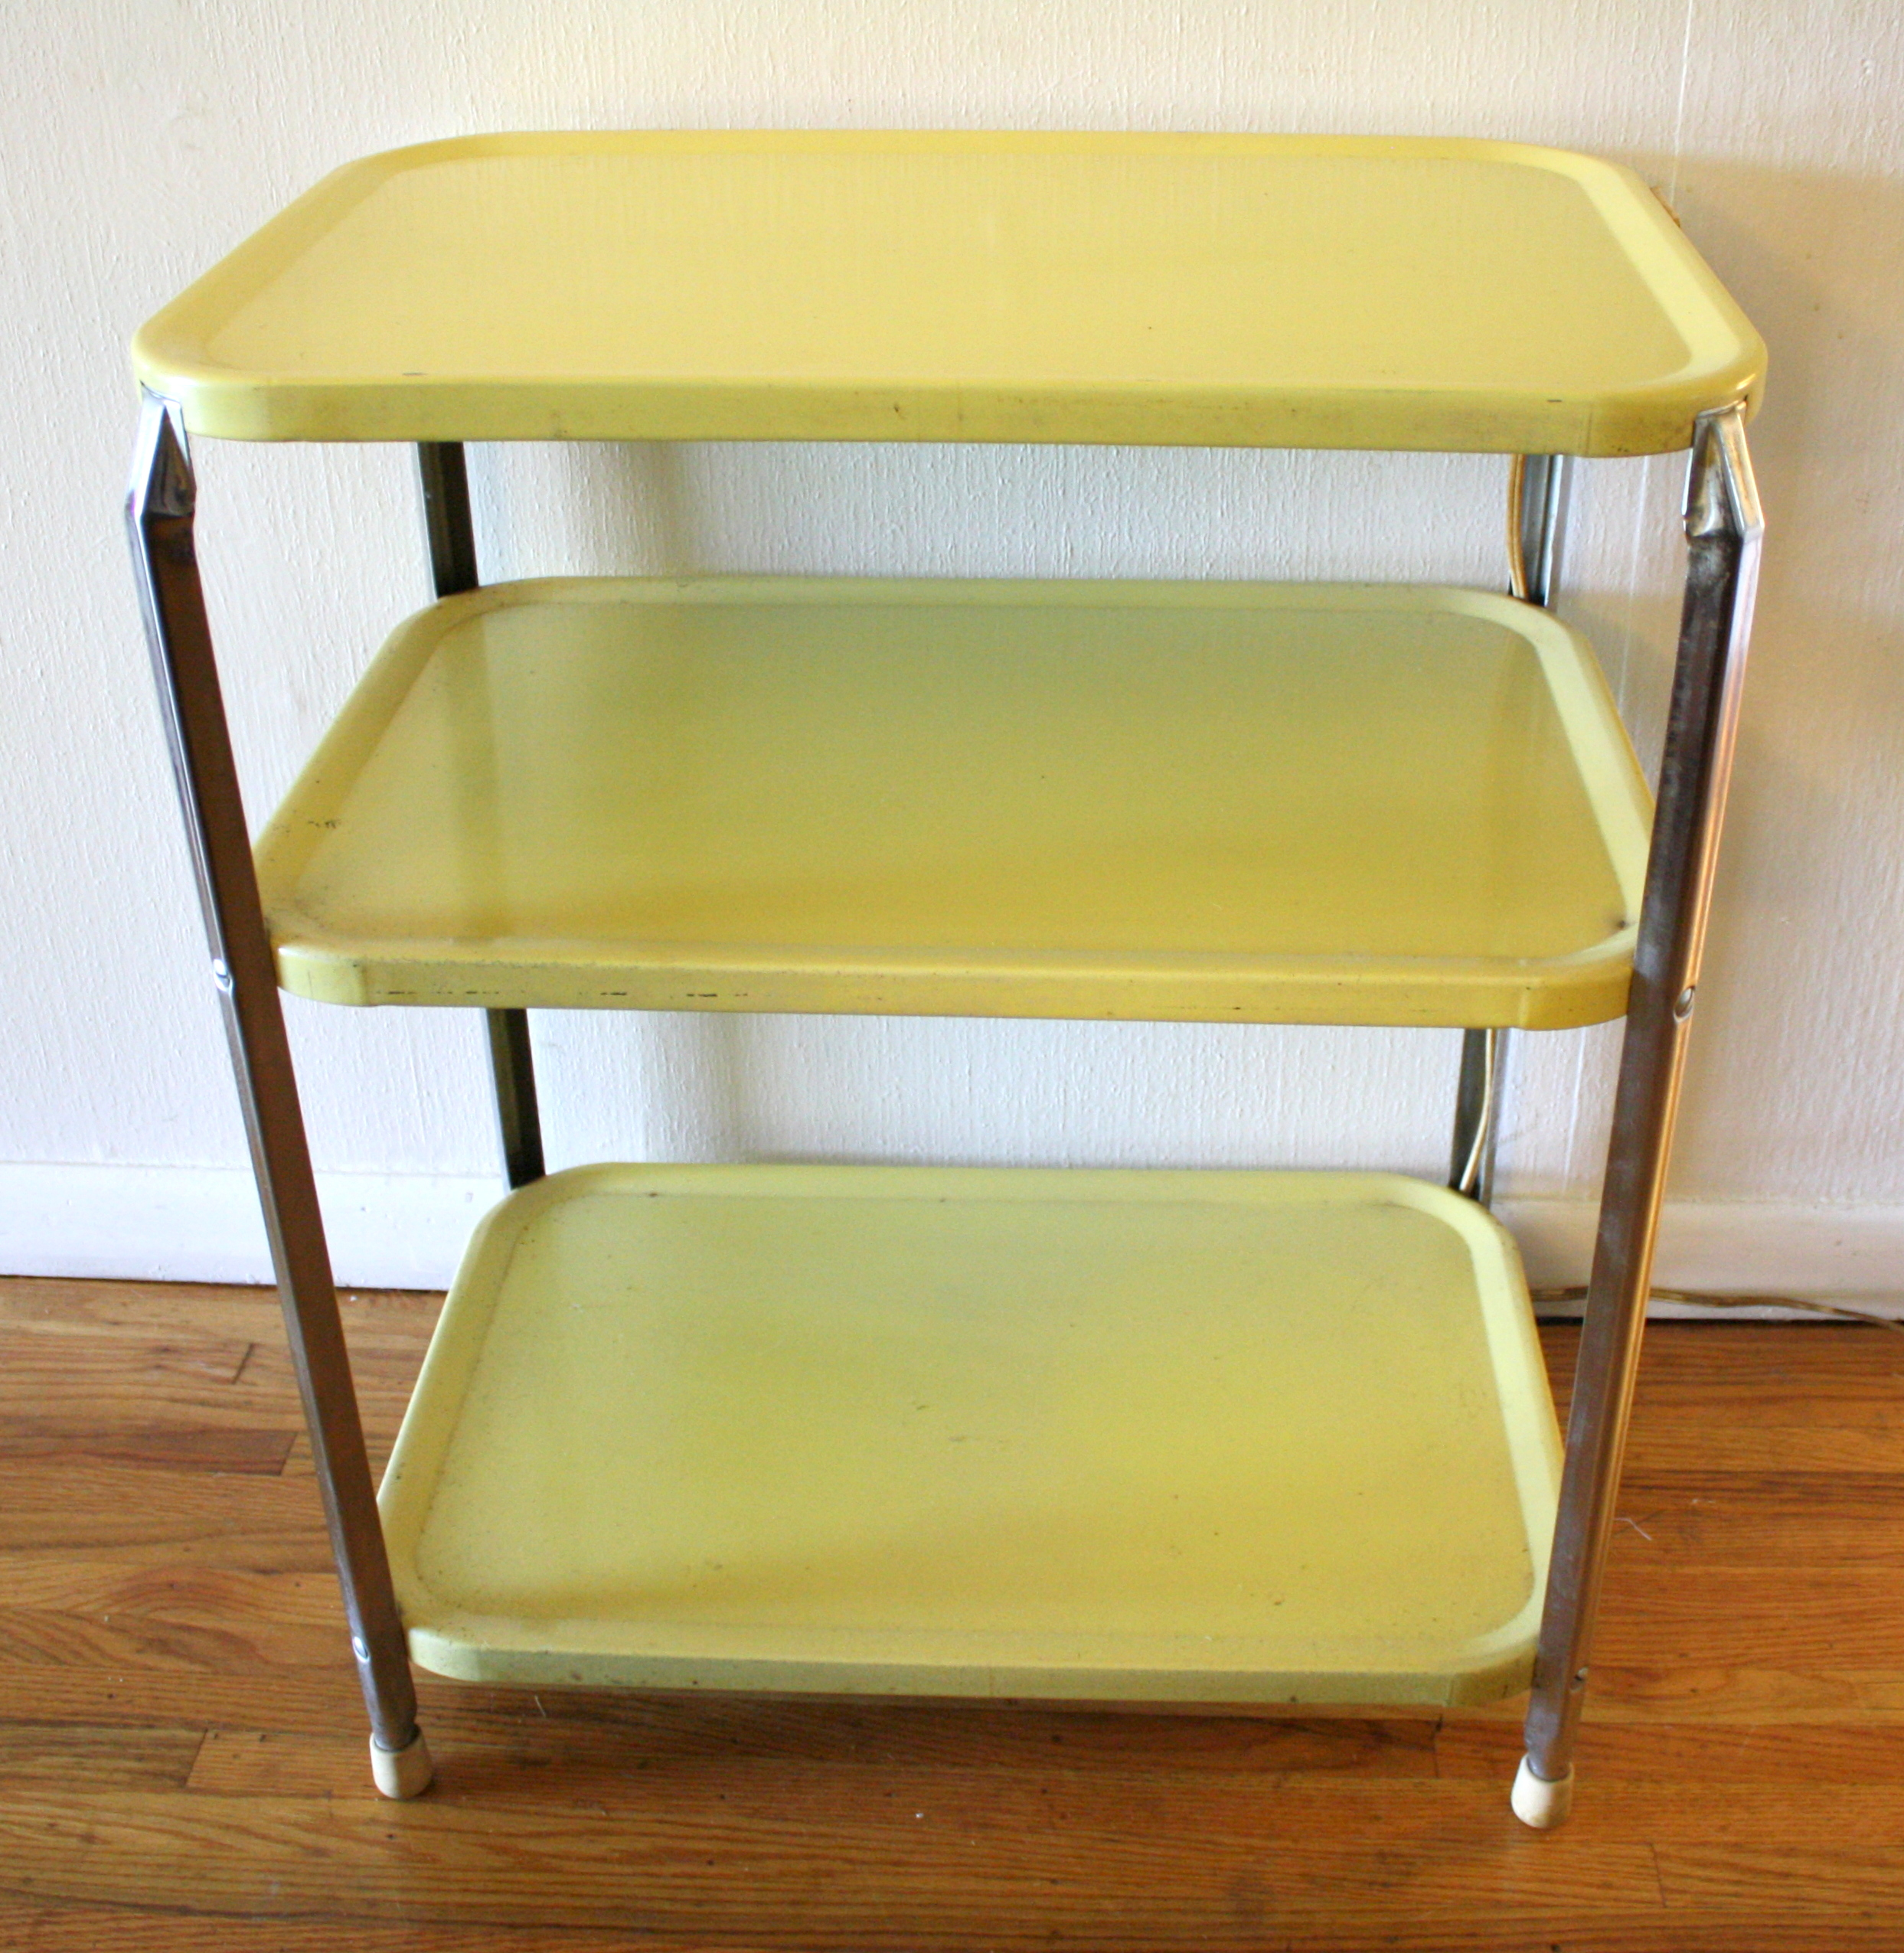 Retro 3 Tier Shelf Metal Carts Picked Vintage